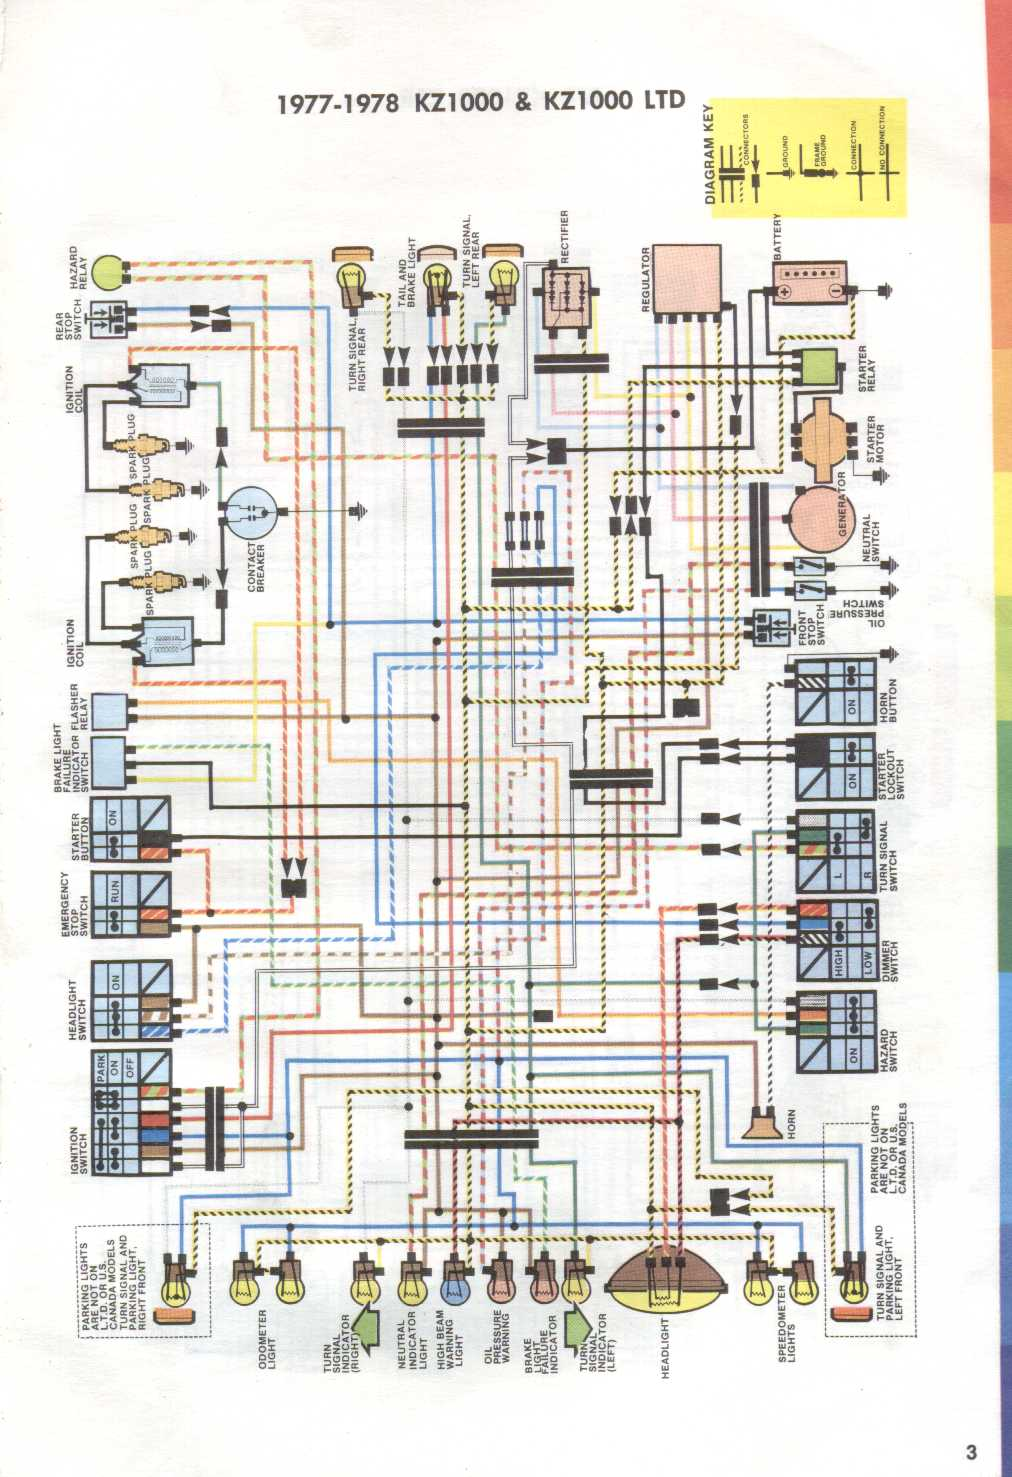 1977 yamaha enticer 250 wiring diagram wiring library 1977 yamaha zx 250 engine motorcycle wiring diagrams kawasaki zx10 electrical diagrams kawasaki electrical diagrams